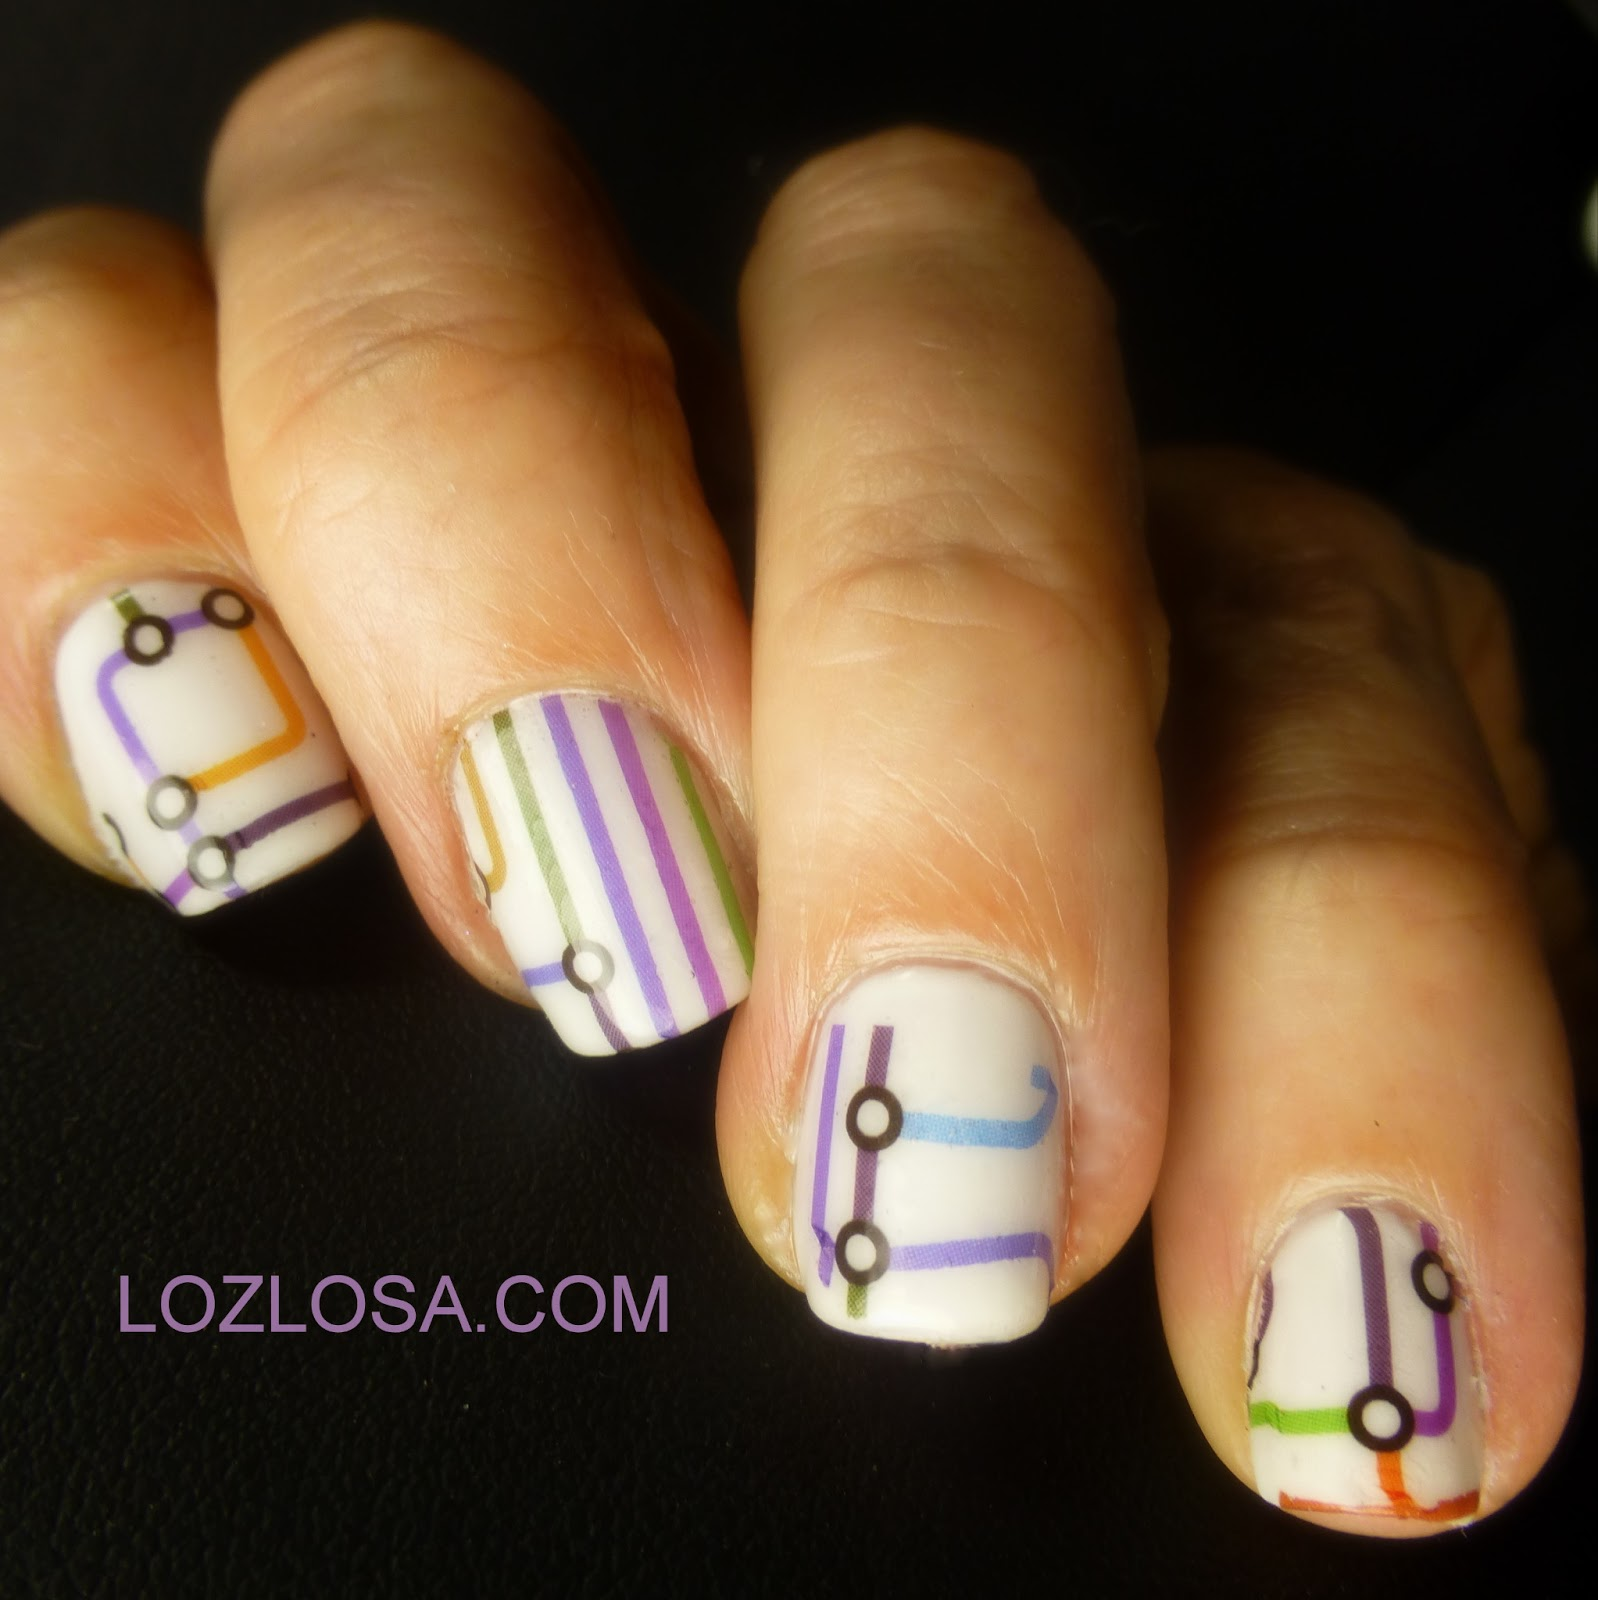 Rs Nail: Mapping It Out With Fing'rs Nail Art Tattoos